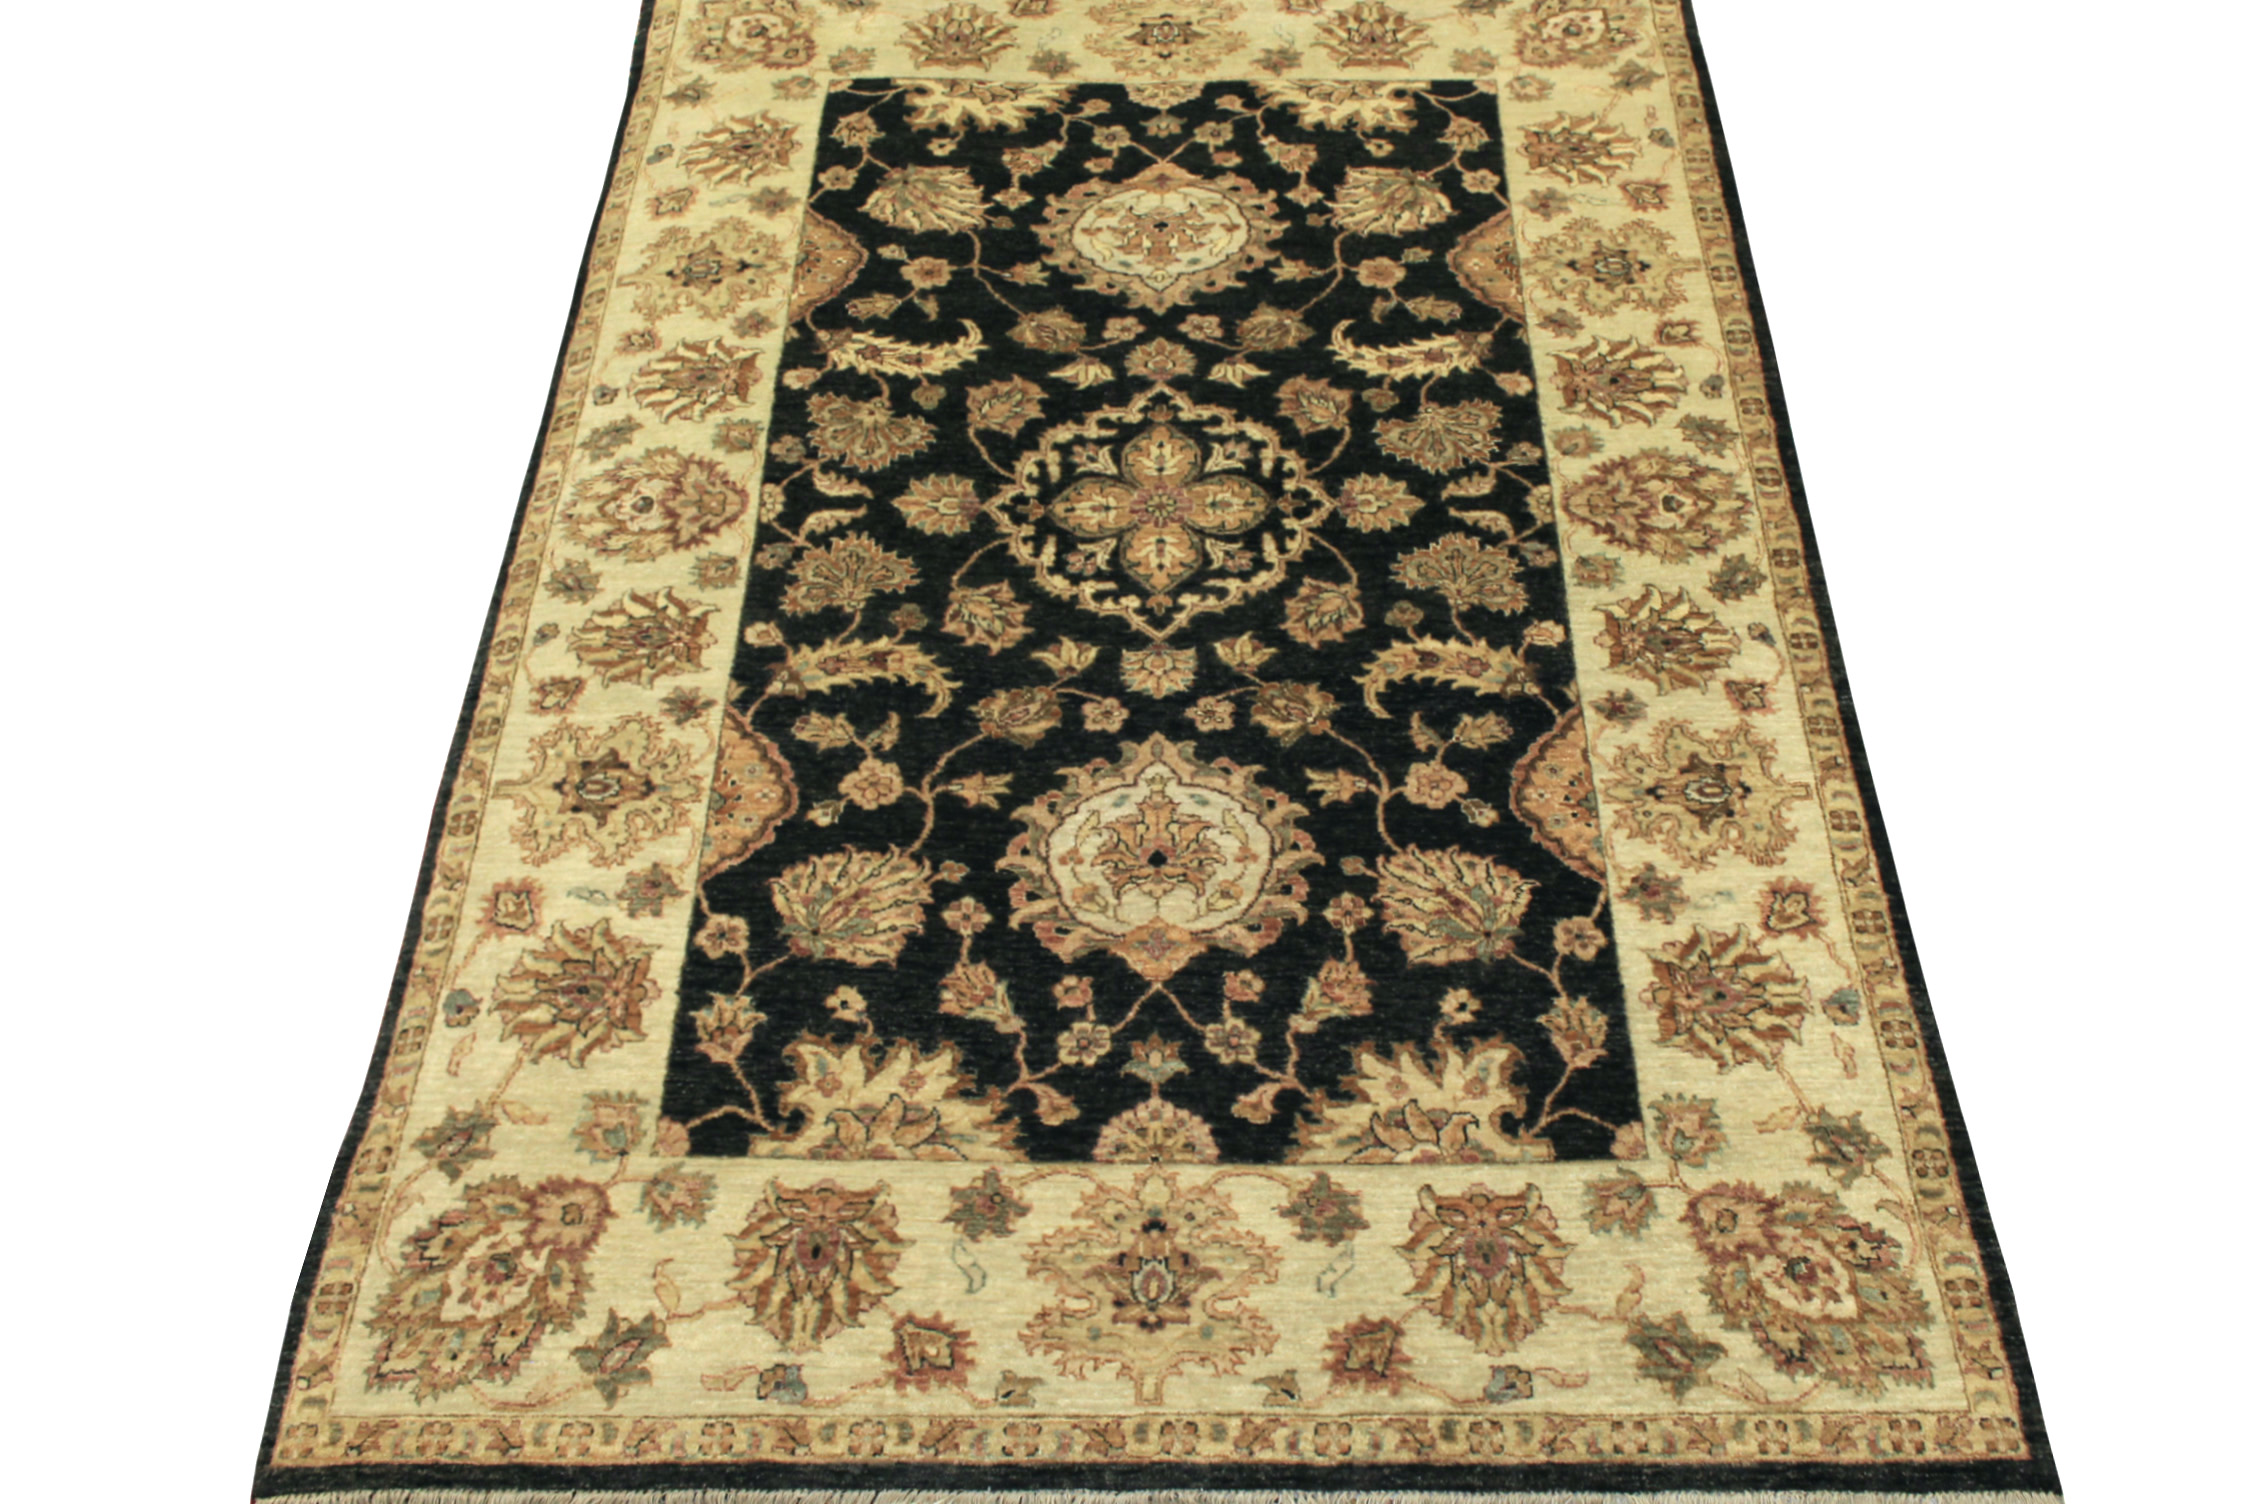 6x9 Traditional Hand Knotted Wool Area Rug - MR11370